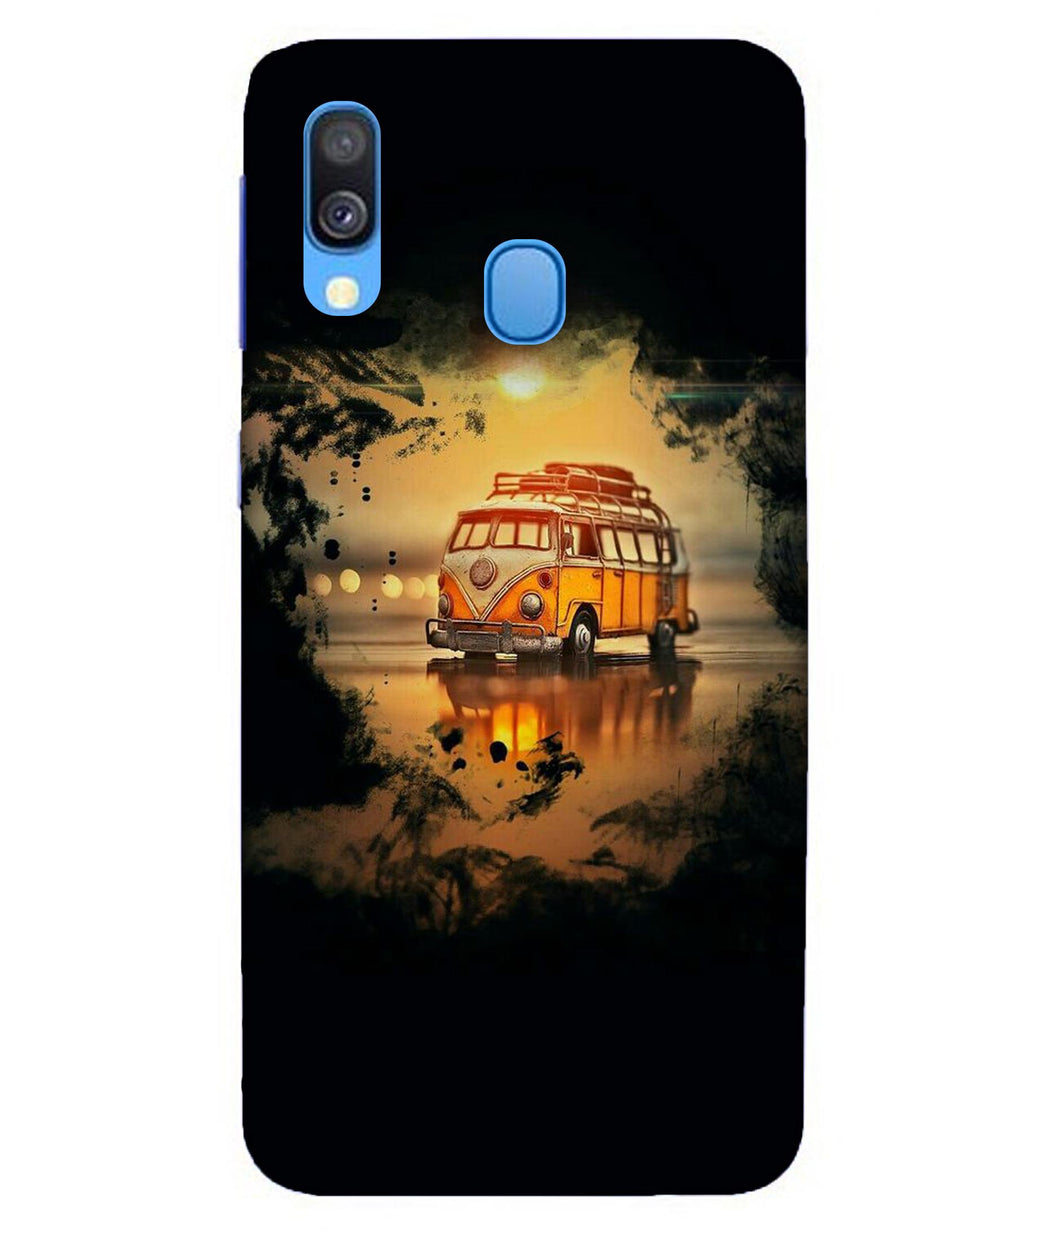 Samsung A40 Sunset mobile cover